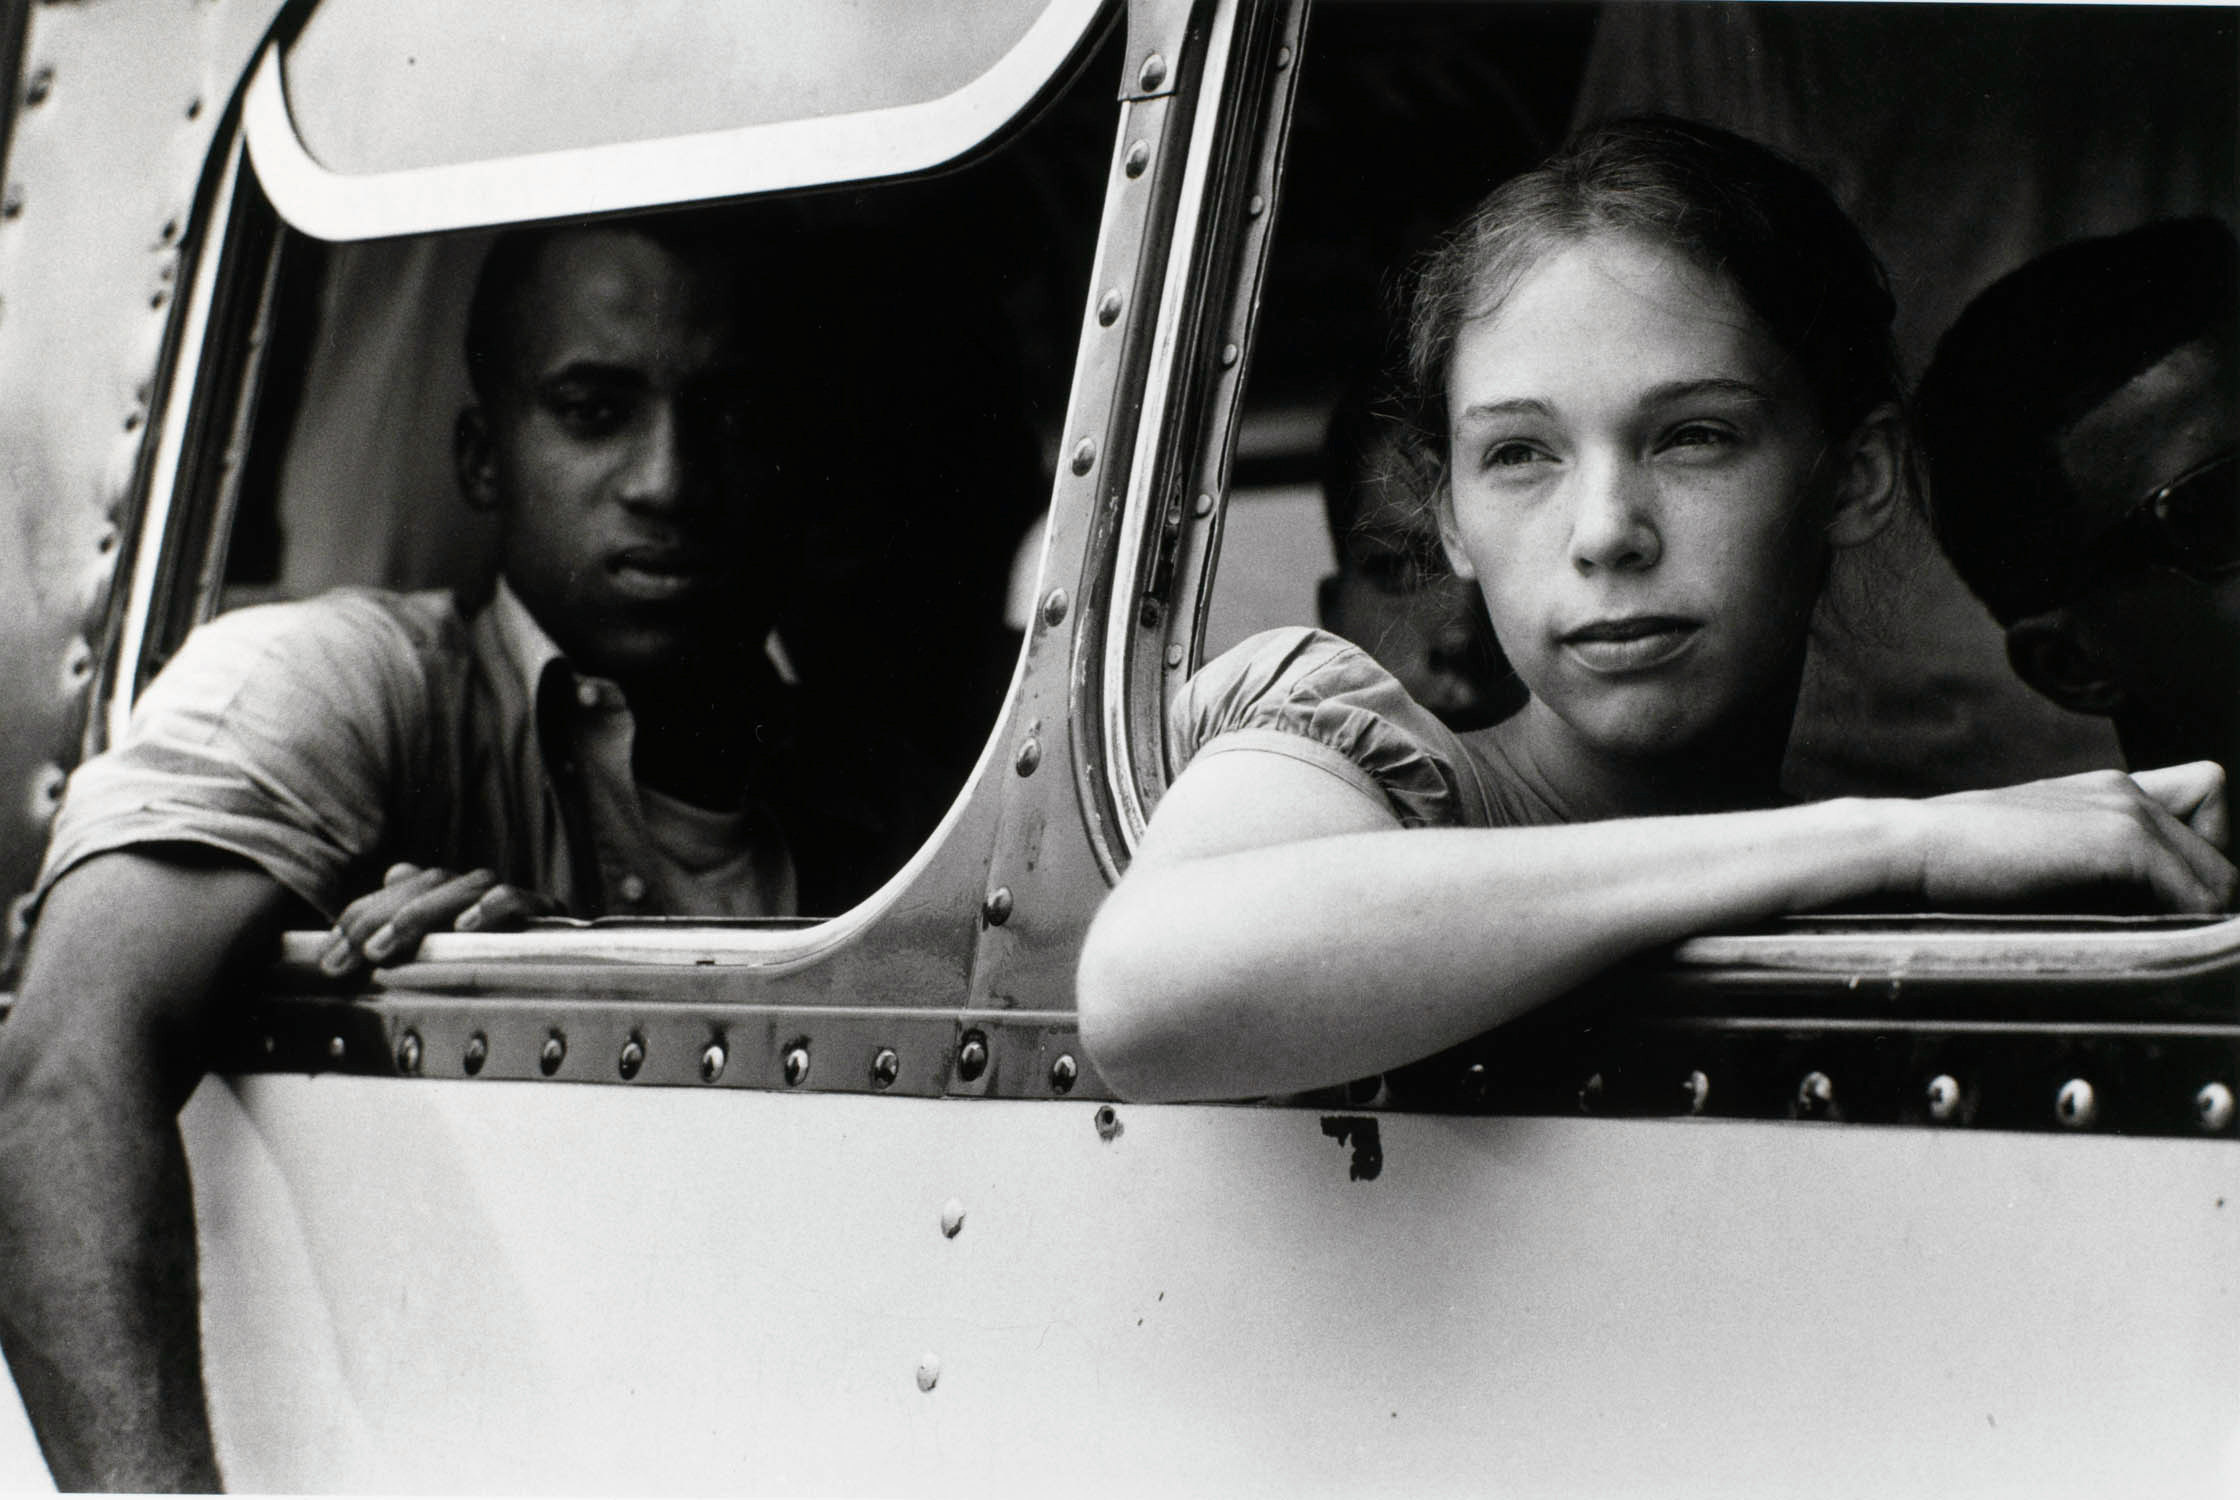 Steve Schapiro (American, born 1936), Freedom Bus Riders, Summer of '64, Oxford, Ohio,1964, gelatin silver print. High Museum of Art, Atlanta, purchase with funds from the H. B. and Doris Massey Charitable Trust, 2007.217.